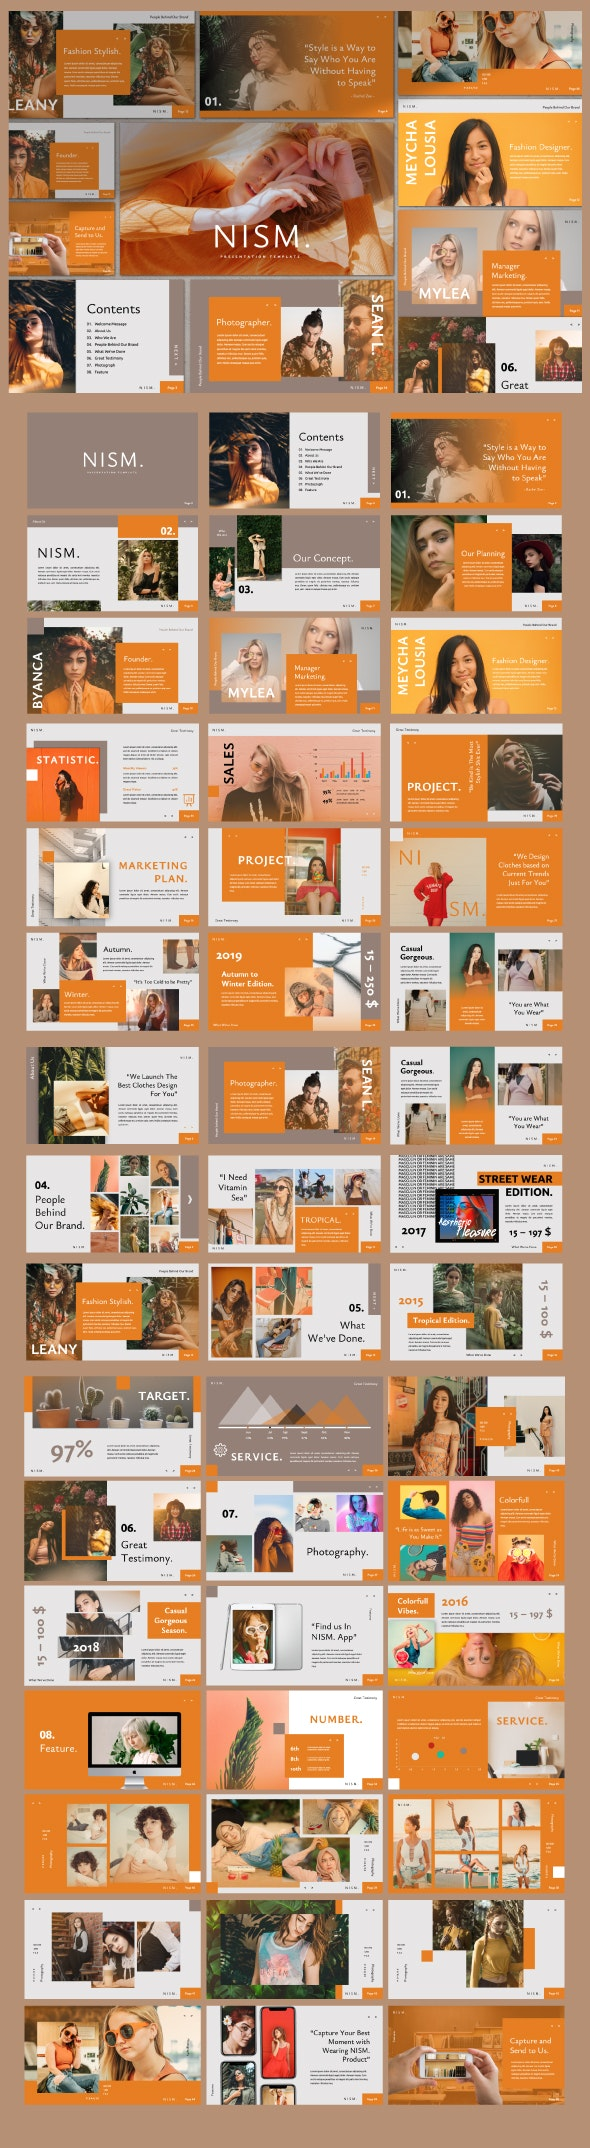 Nism. Brand Sheet Powerpoint - Creative PowerPoint Templates